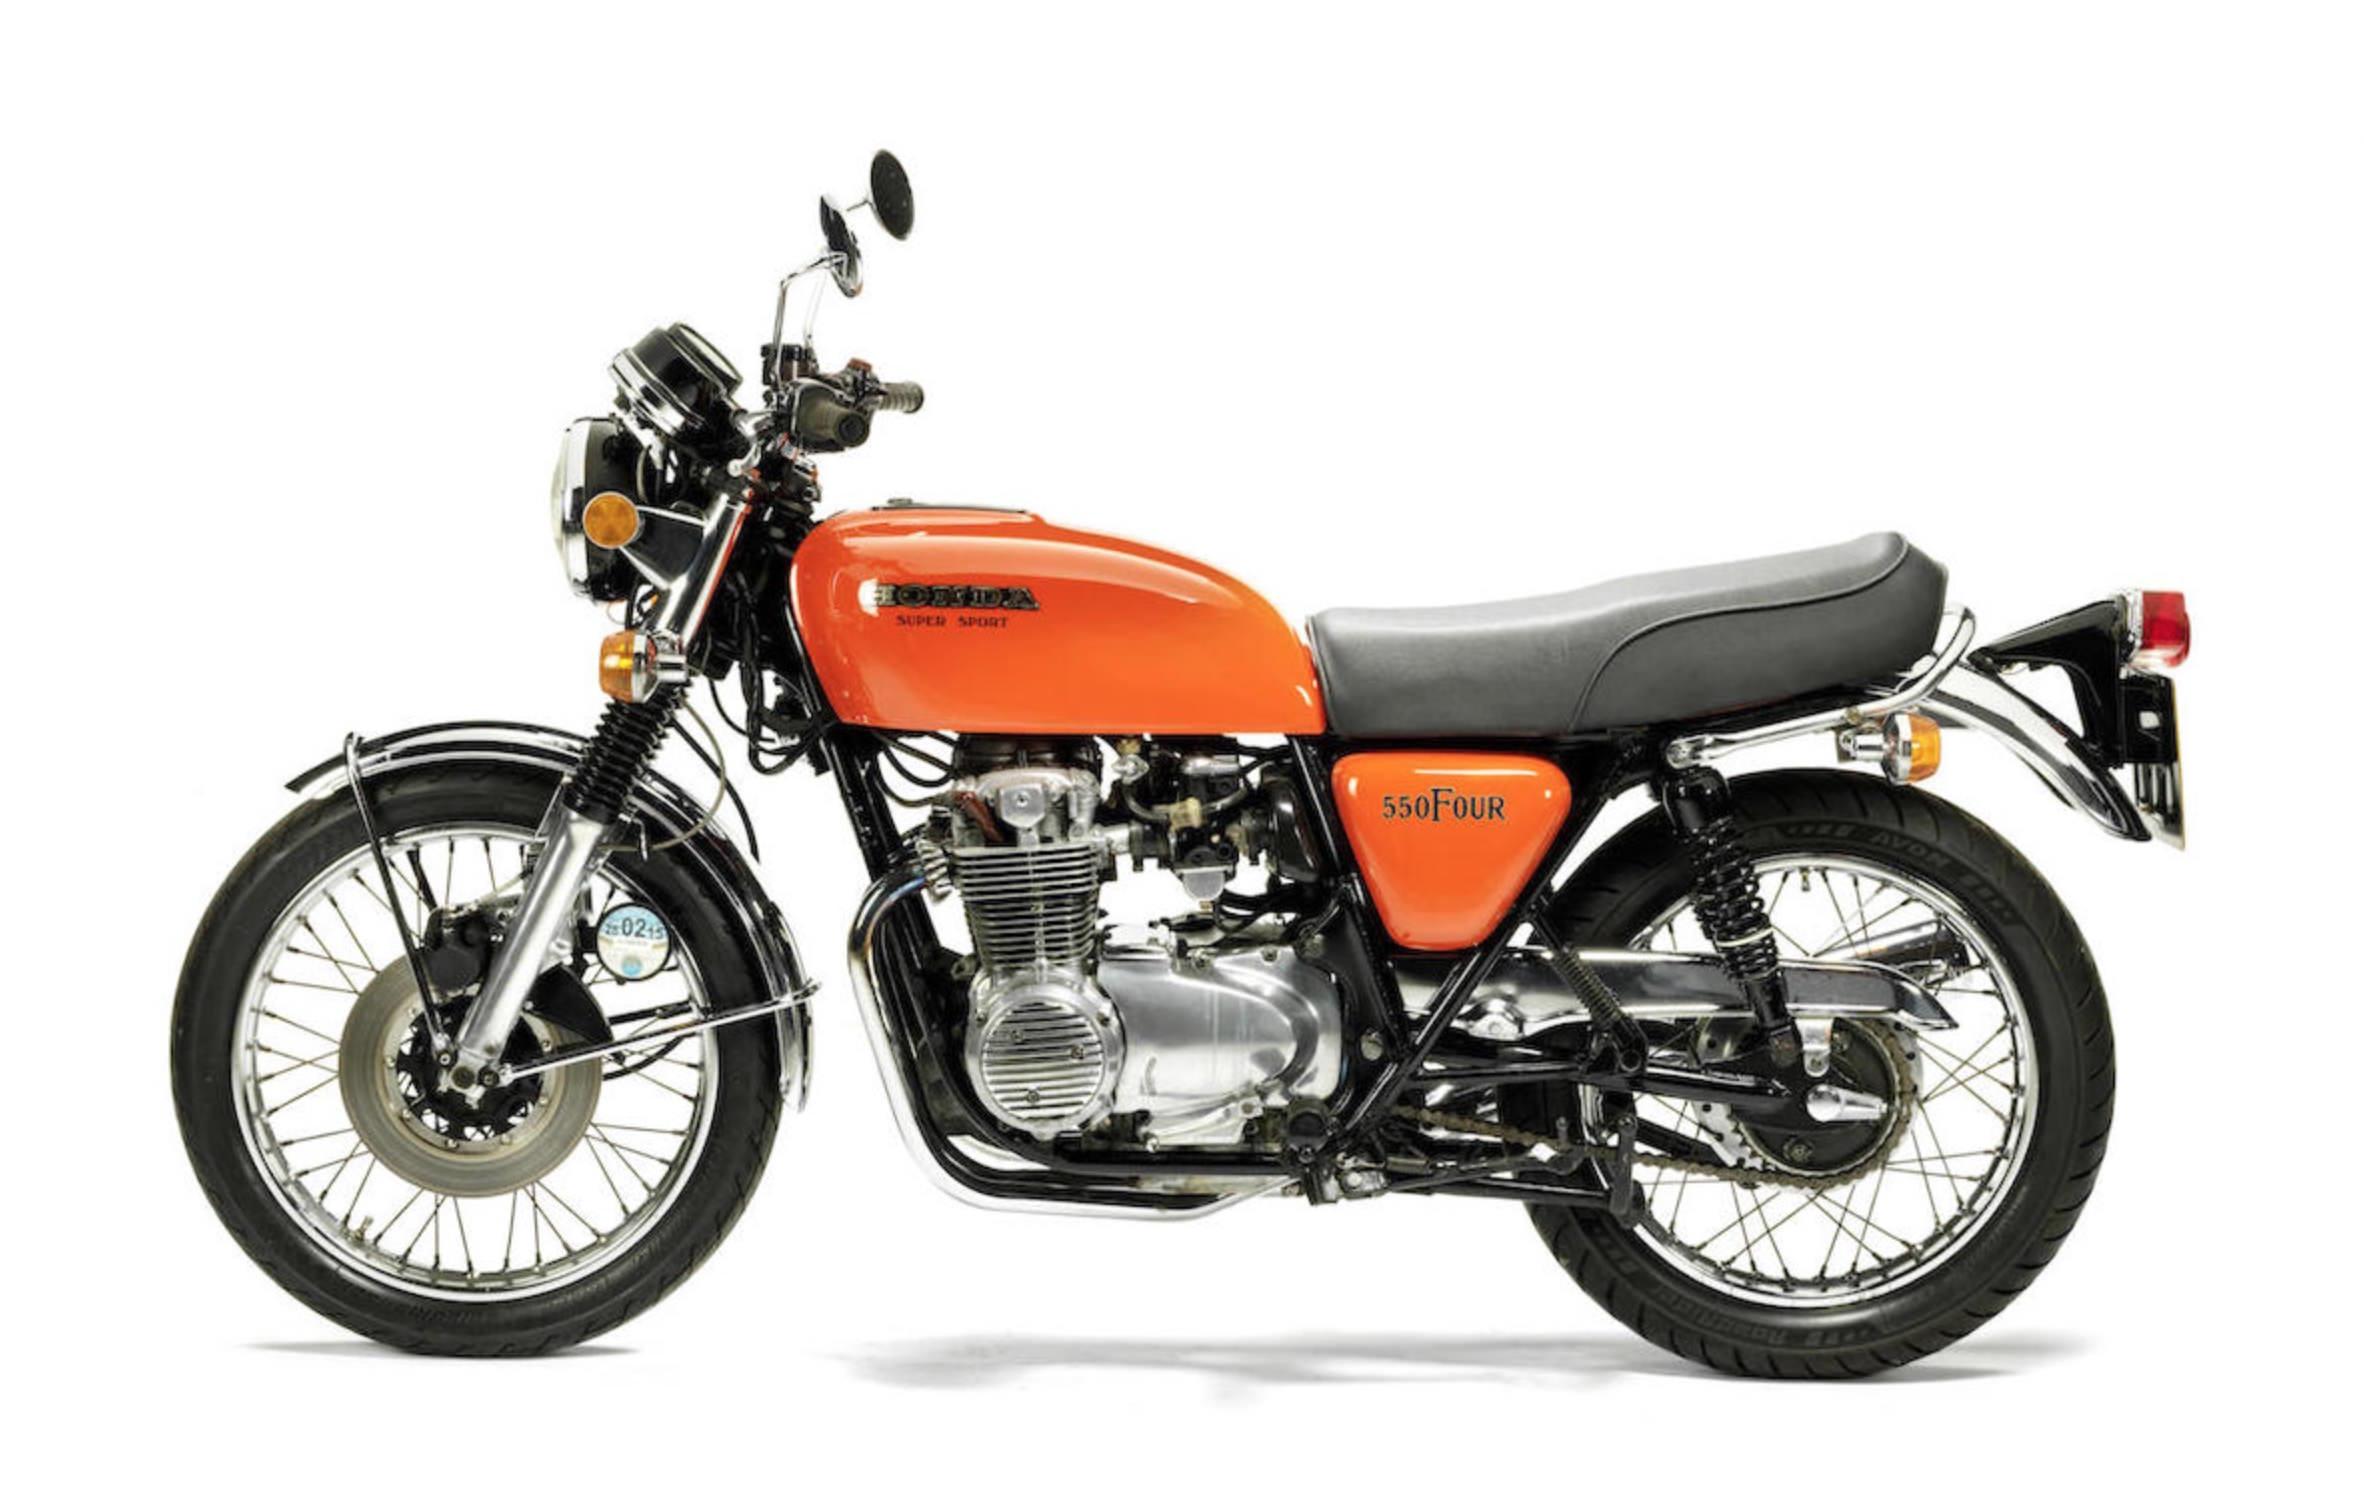 A Brief History Of The Honda Cb550 Motorcycles As This Engine Was Significantly Lighter Than That Cb750 Handling Livelier And It Much Easier Bike To Ride